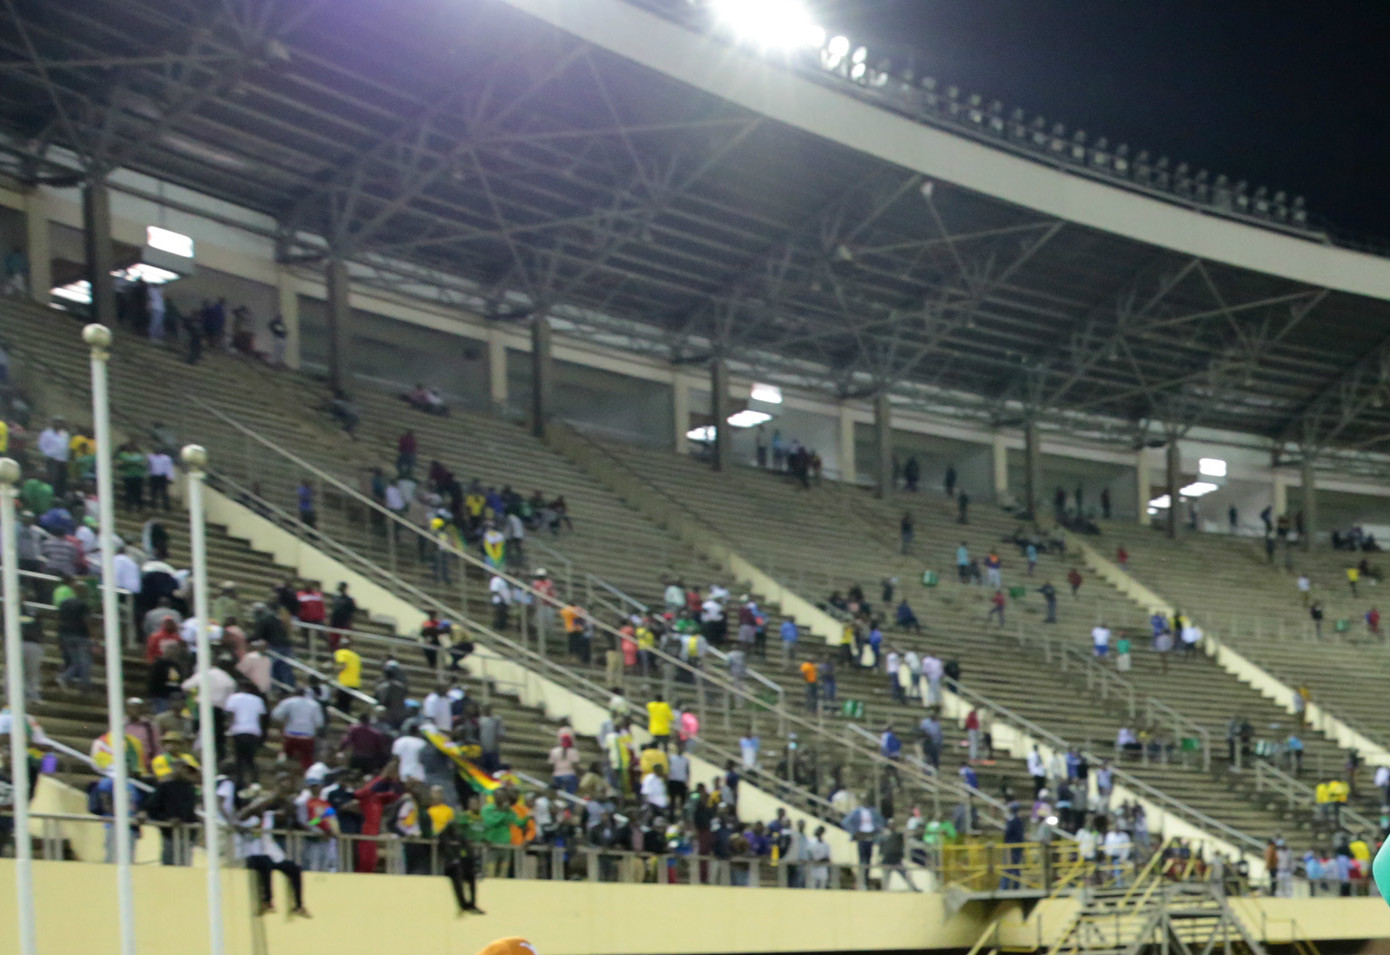 One fan kpuff as Zimbabwe, DR Congo qualify for Afcon 2019